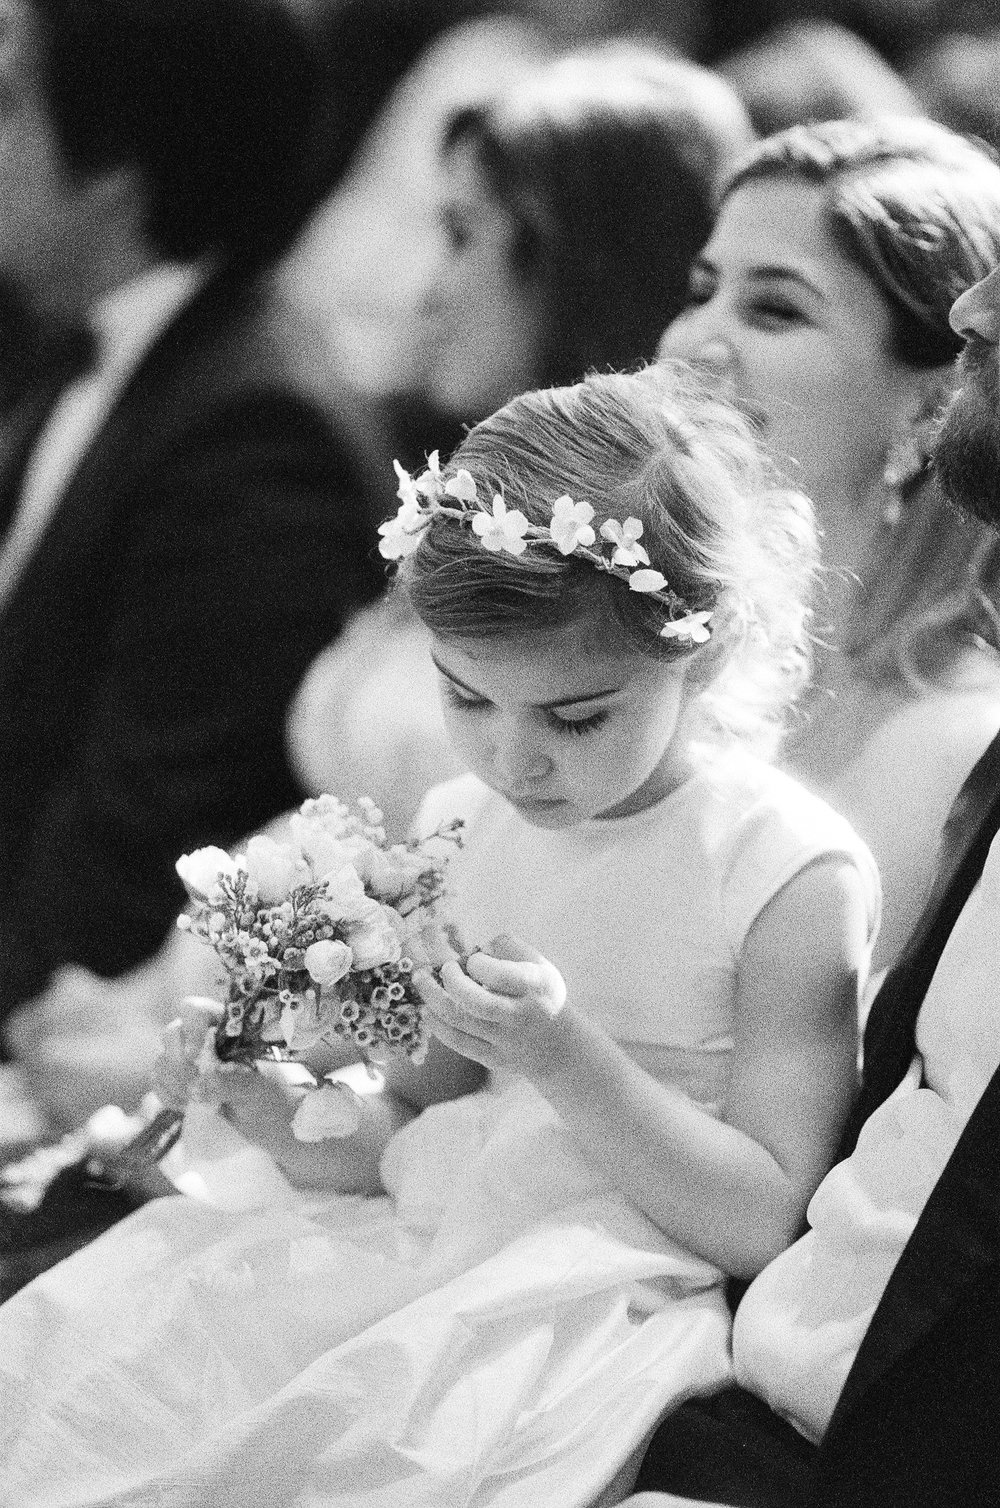 Flower girl in Oscar de la Renta dress